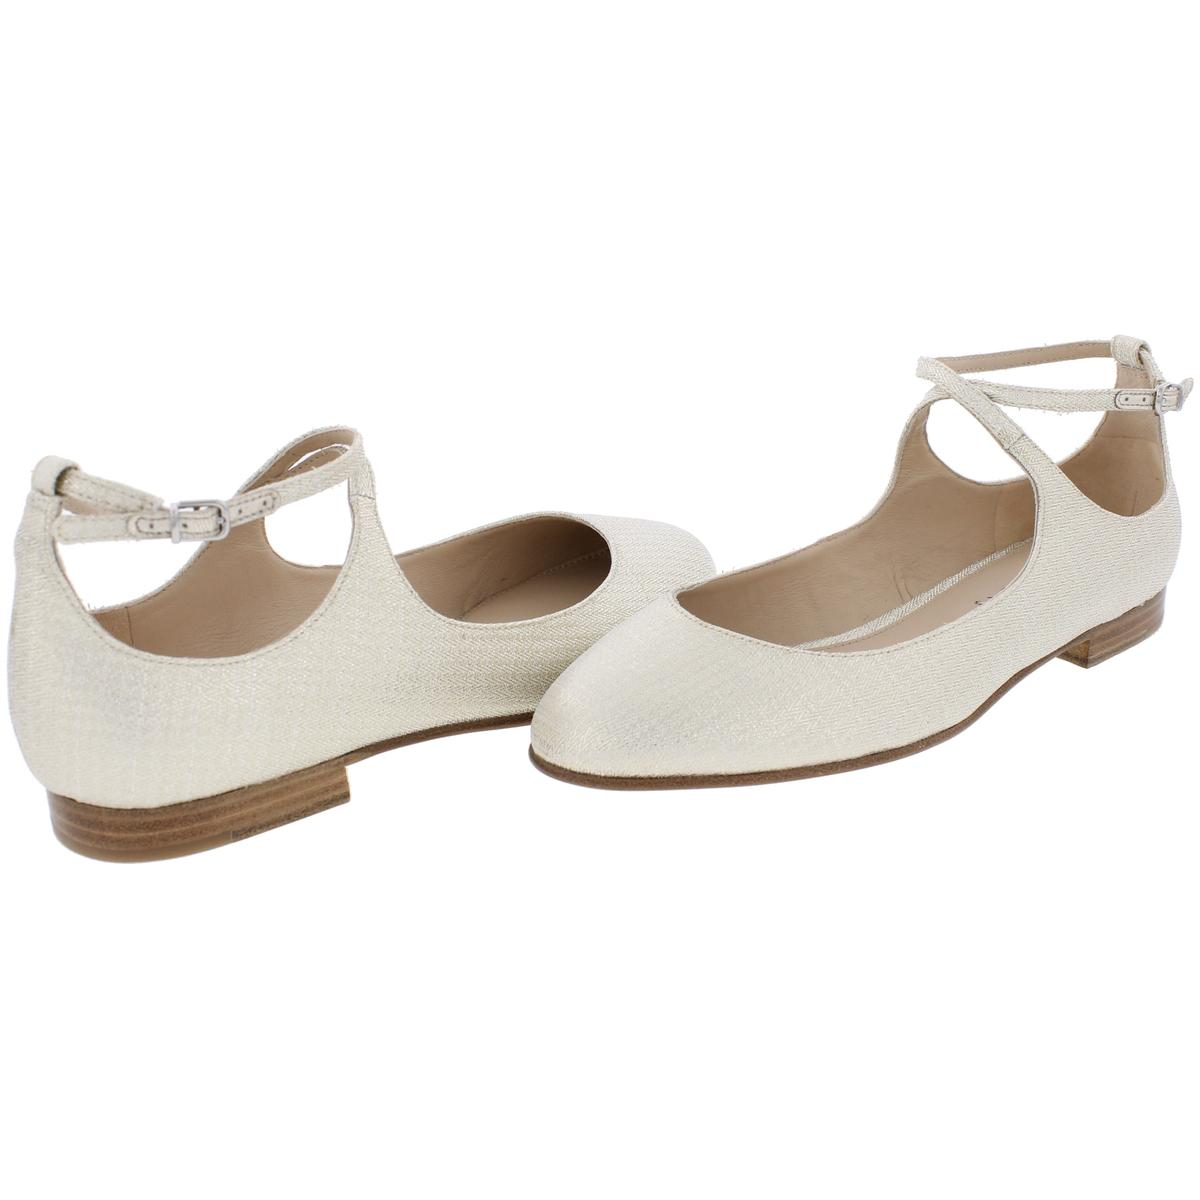 Via-Spiga-Womens-Yovela-Criss-Cross-Front-Ballet-Flats-Shoes-BHFO-4384 thumbnail 7